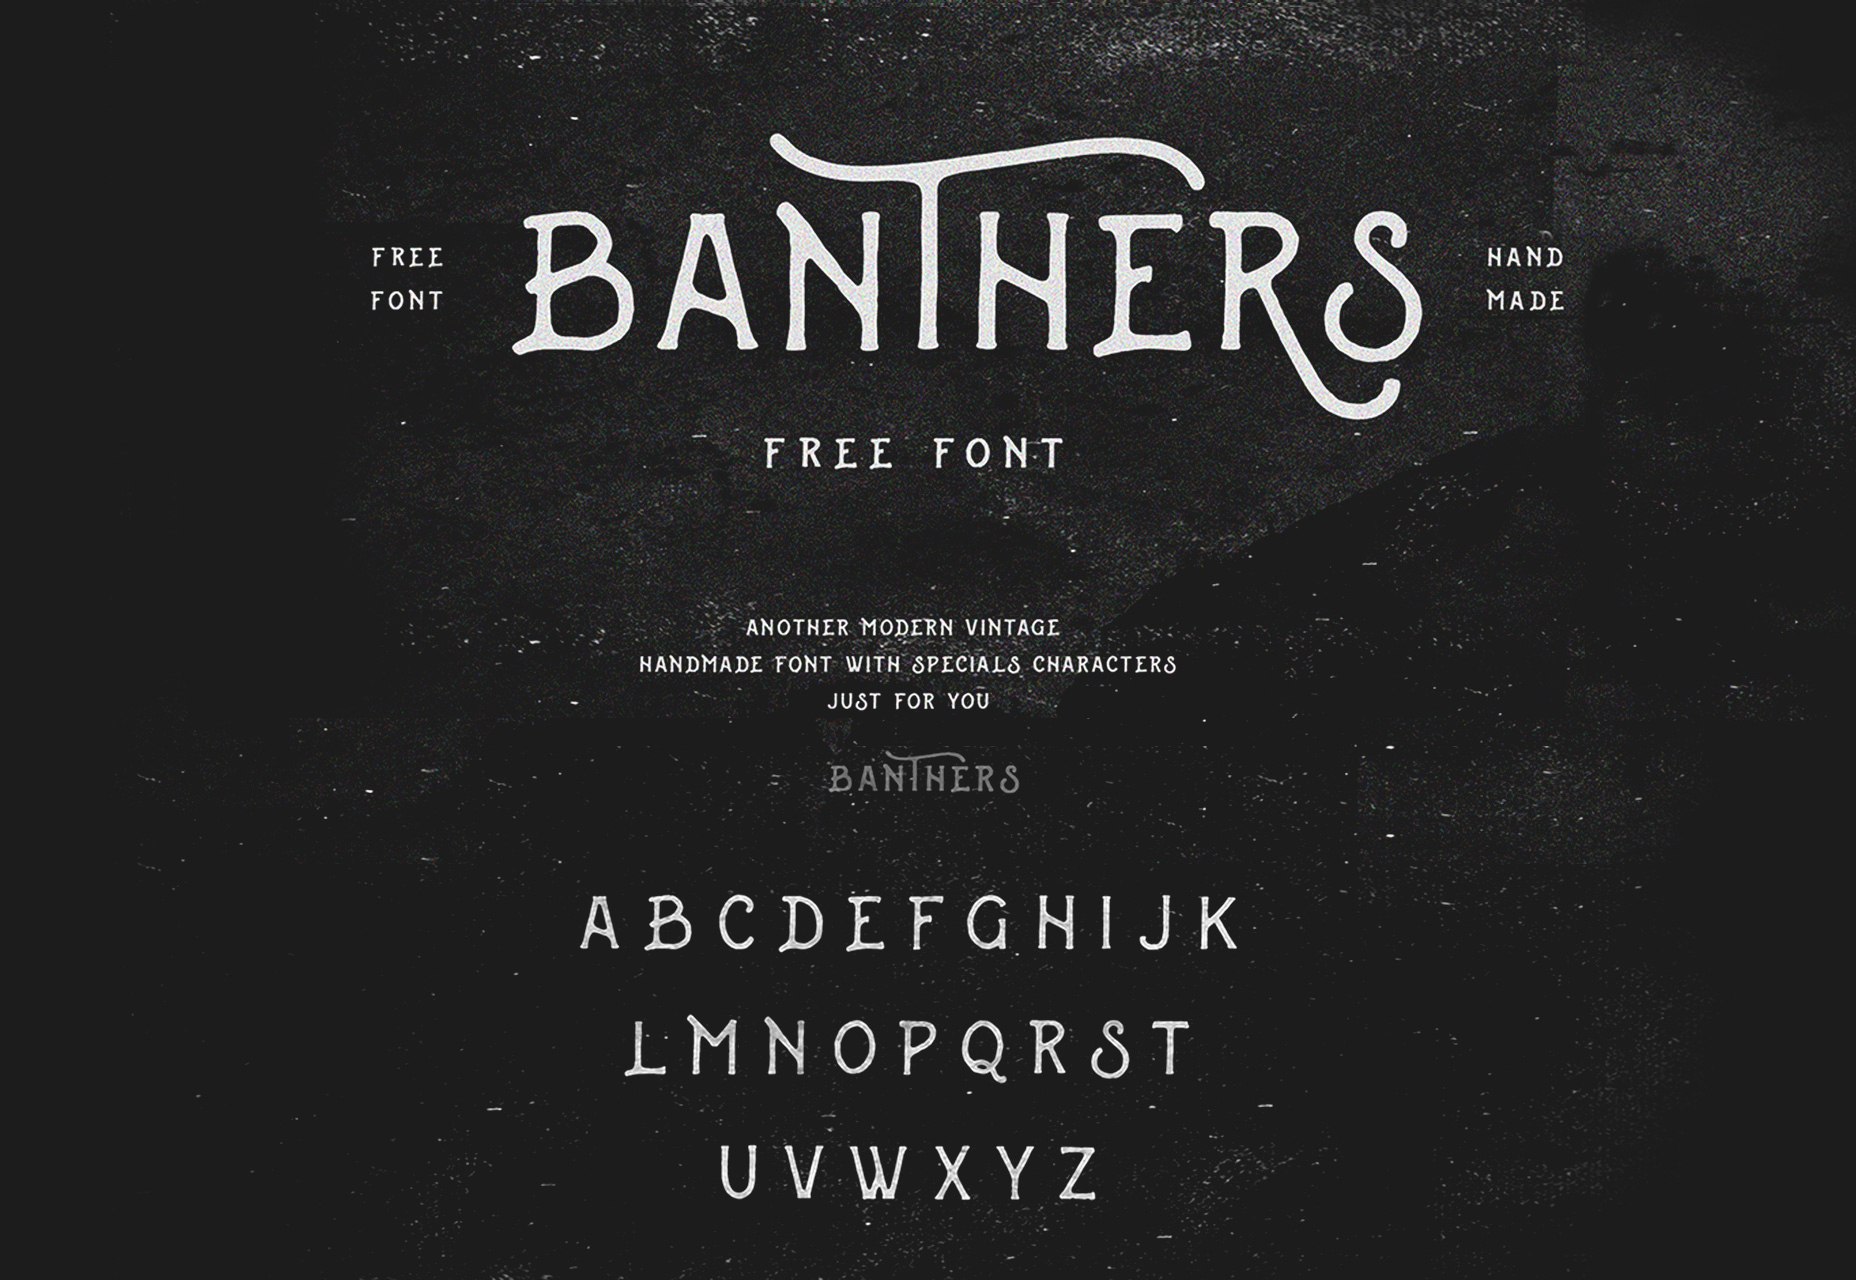 Banthers: A Chalk Handwritef lettereface